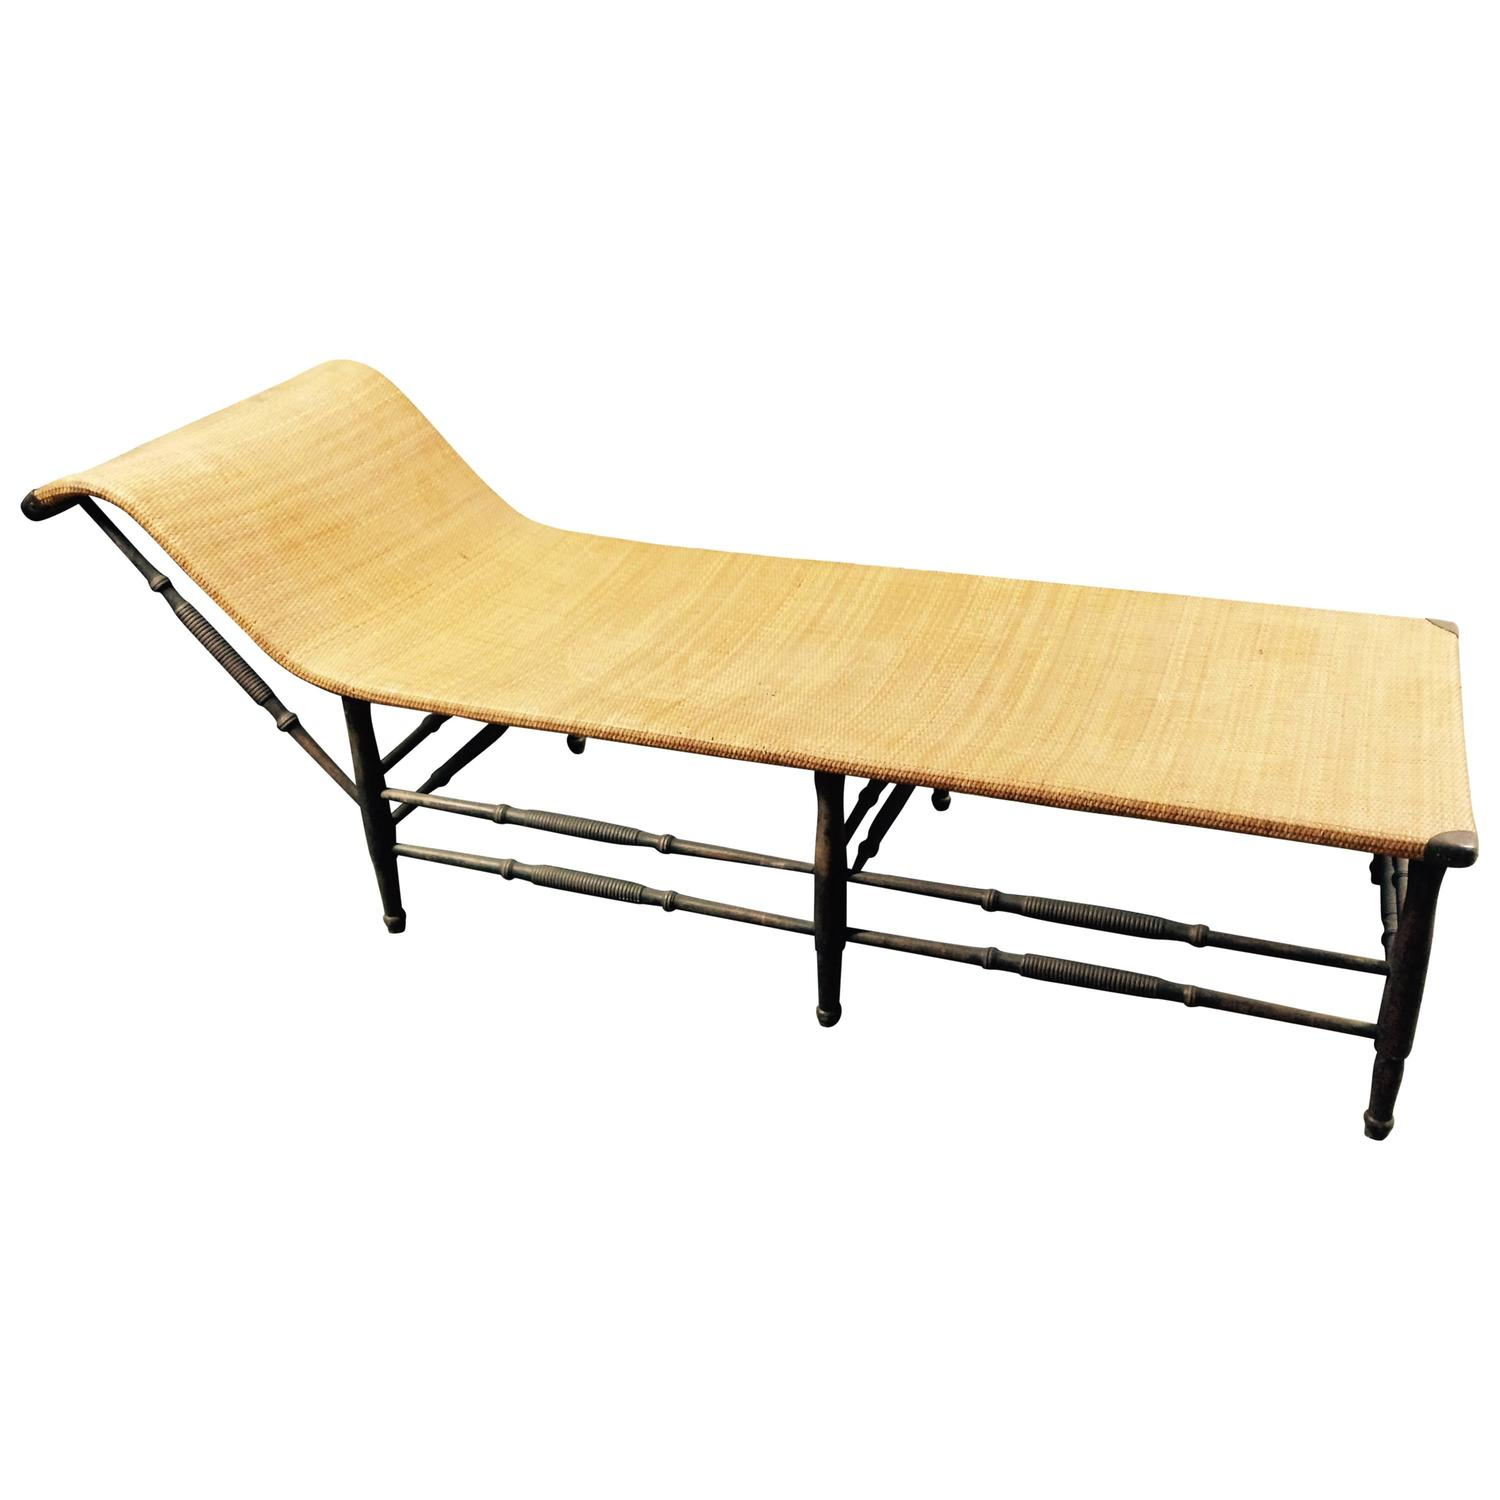 Antique rattan chaise longue for sale at 1stdibs for Antique chaise longue